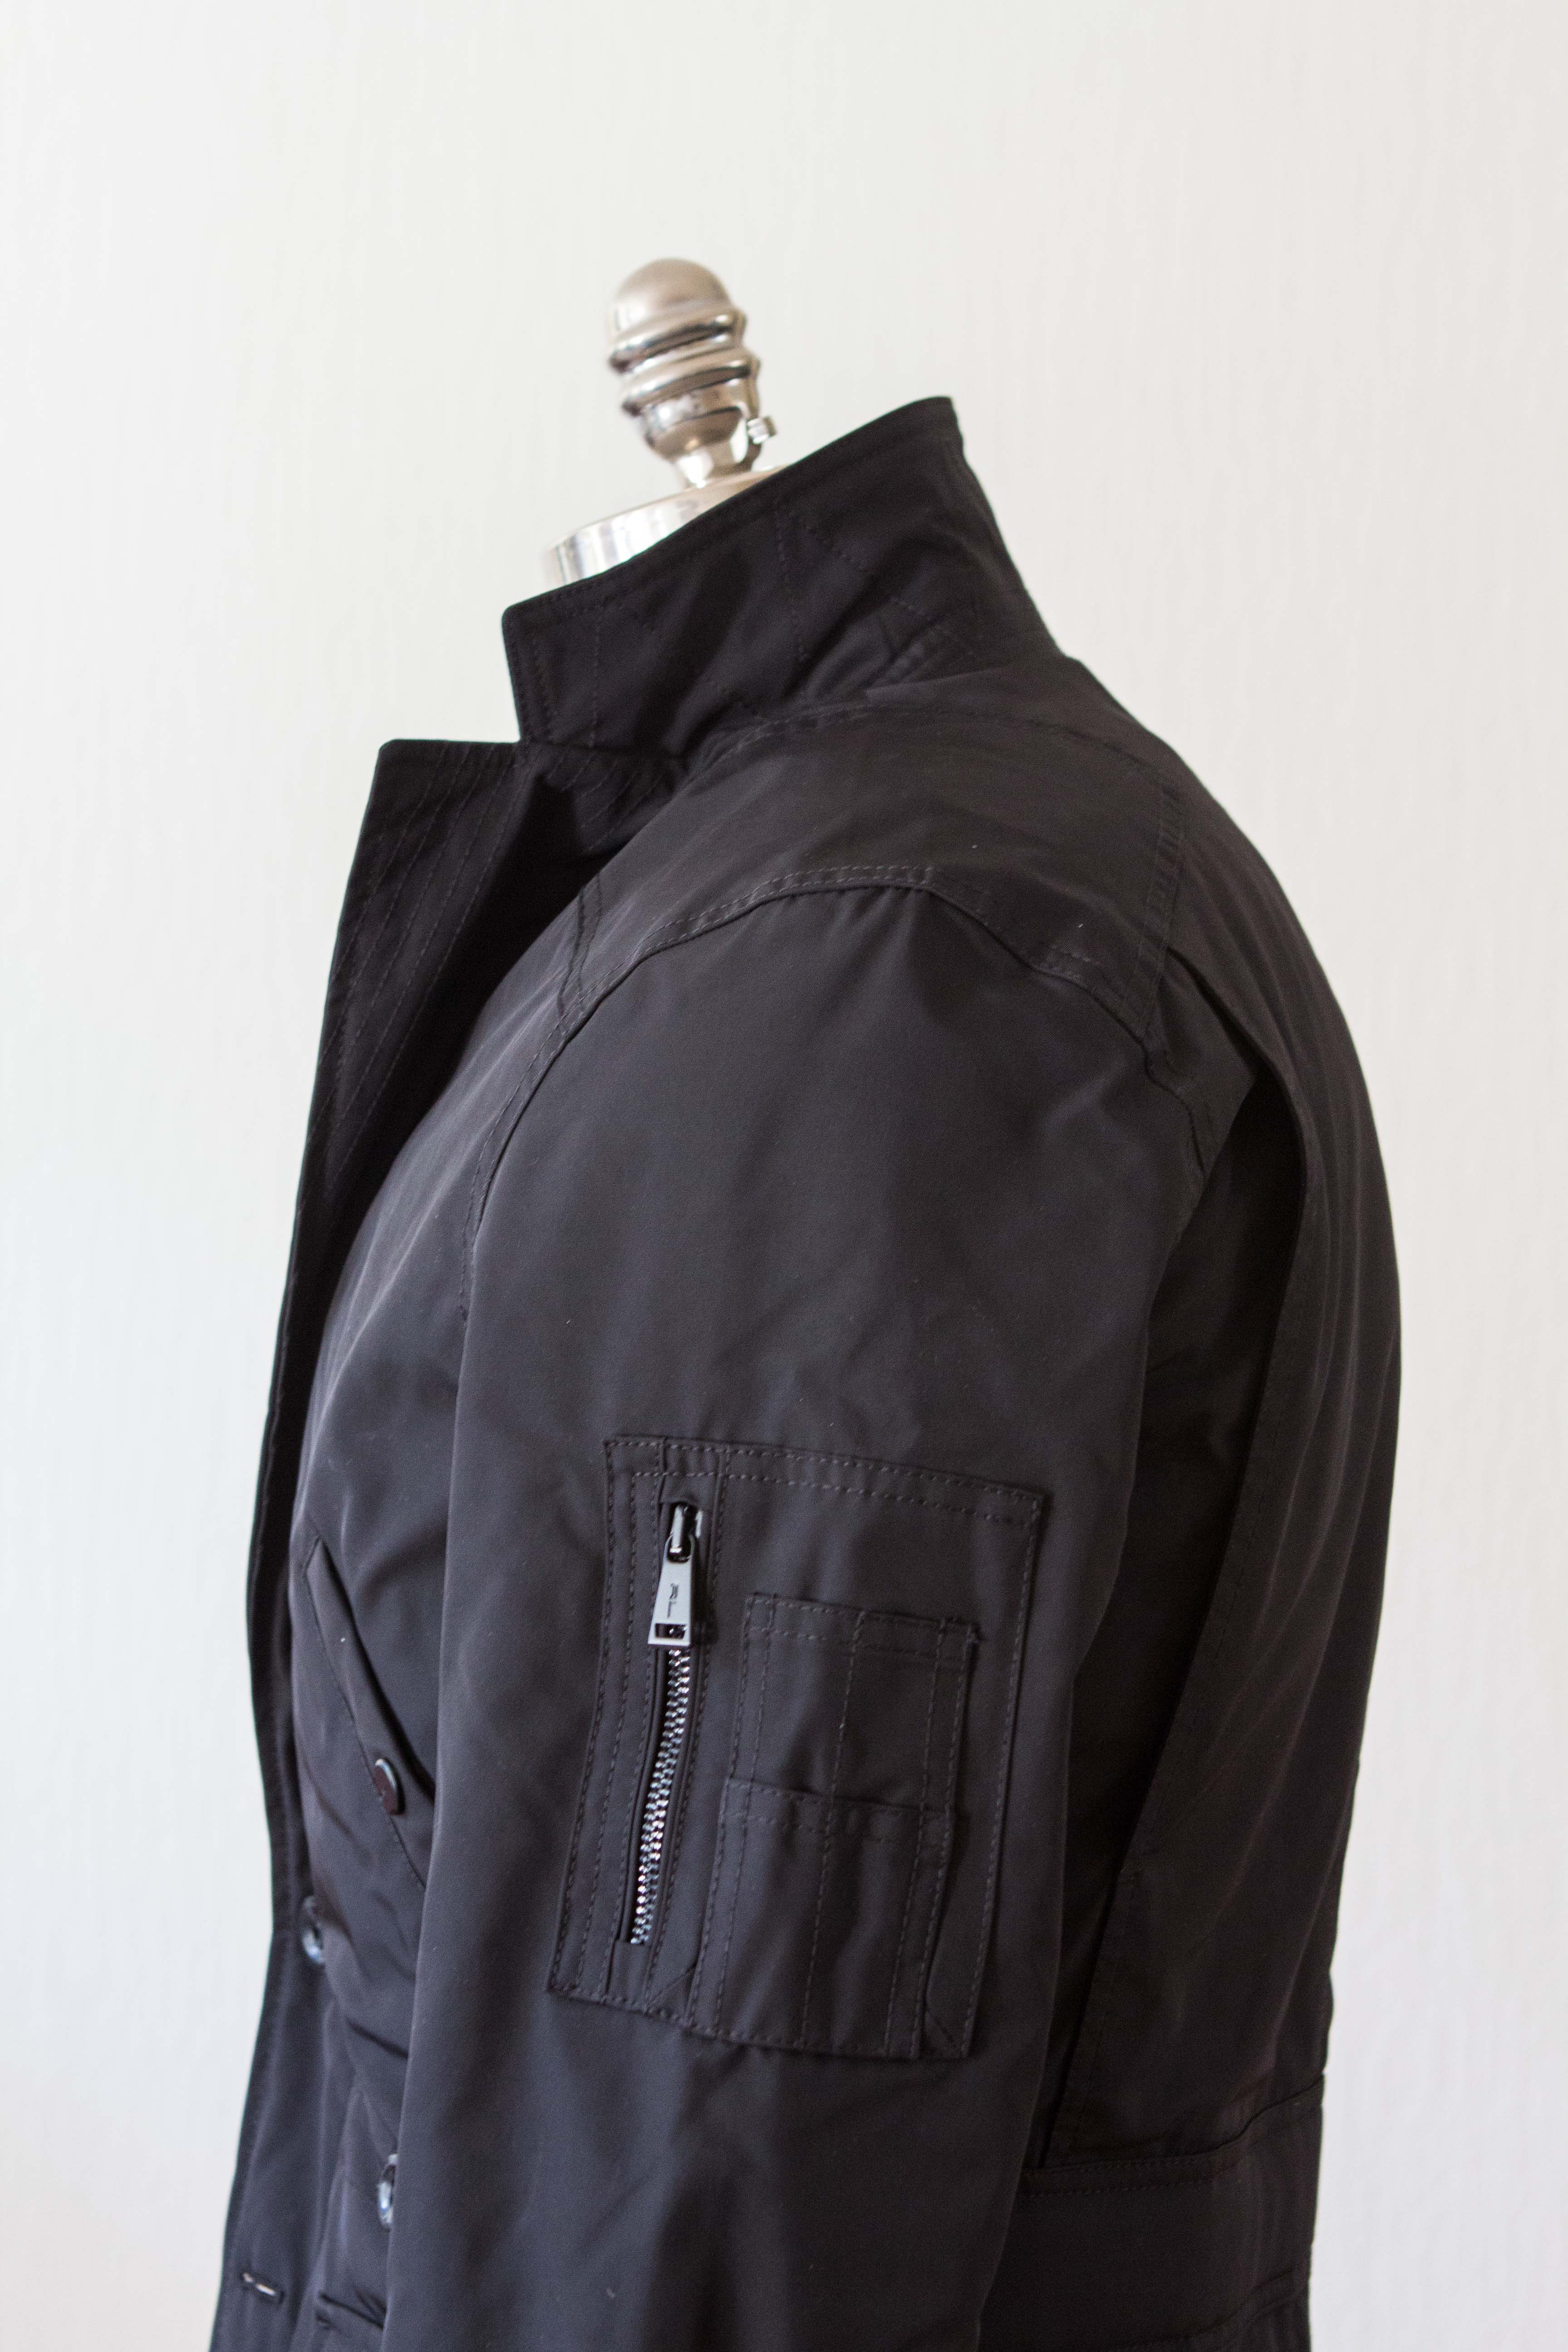 Military sc-lined-jacket - 06.jpg